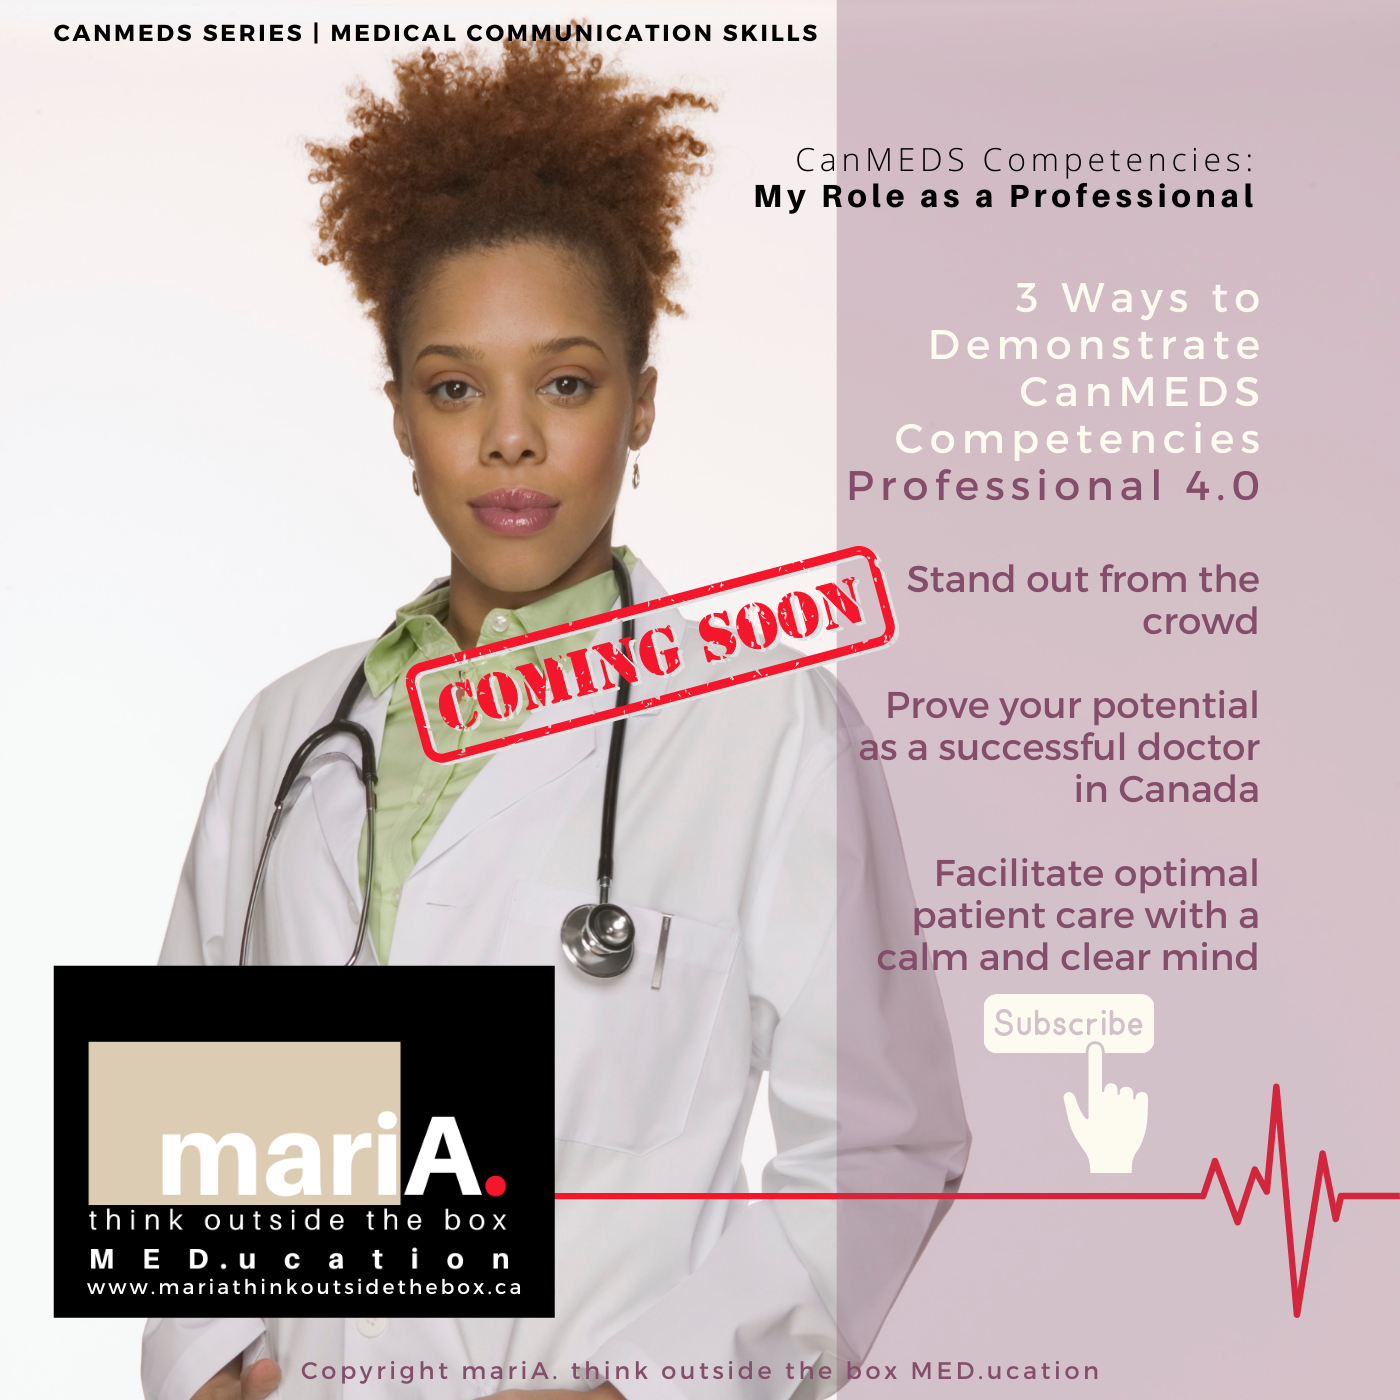 Black Female Doctor promoting Physician professionalism in Canada